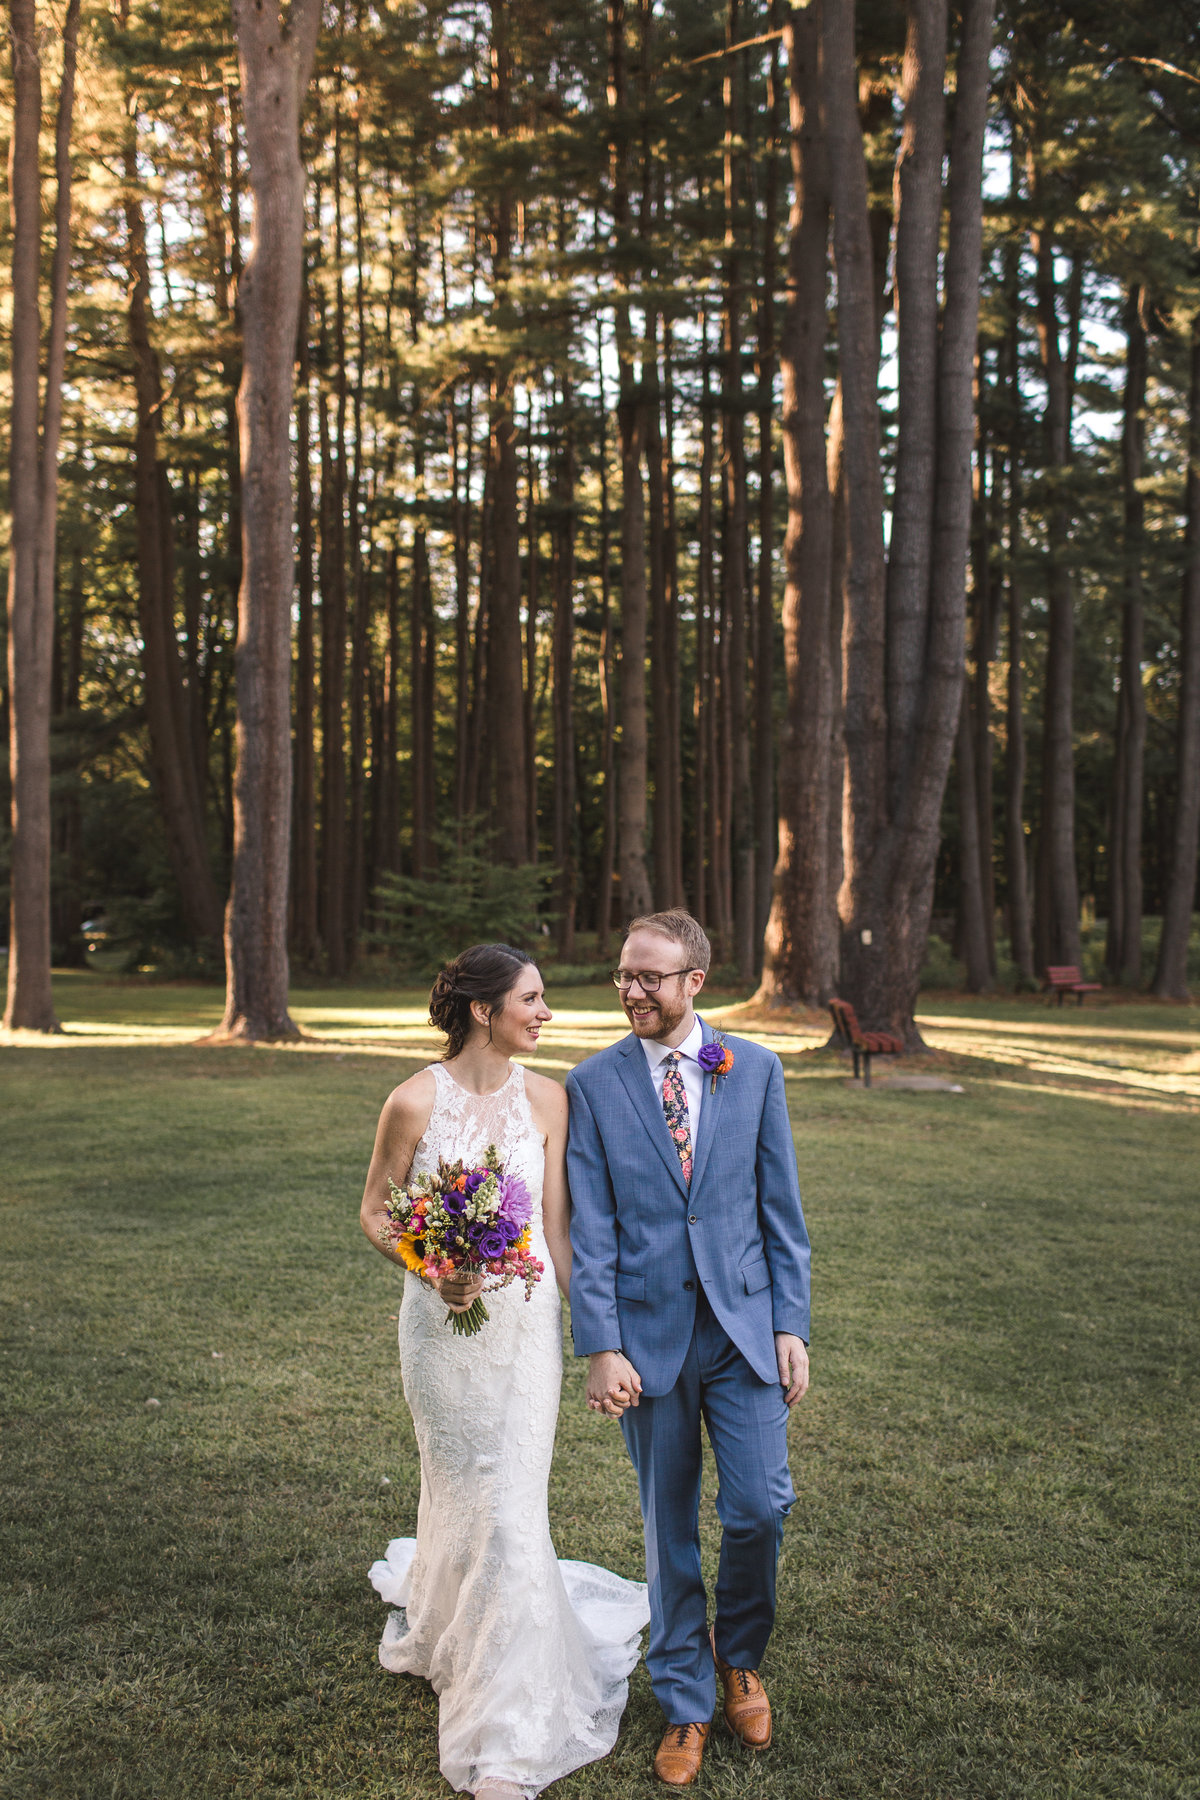 Northampton_Massachusetts__fall_wedding_About_Time_Photography_Look_Park_photo_27